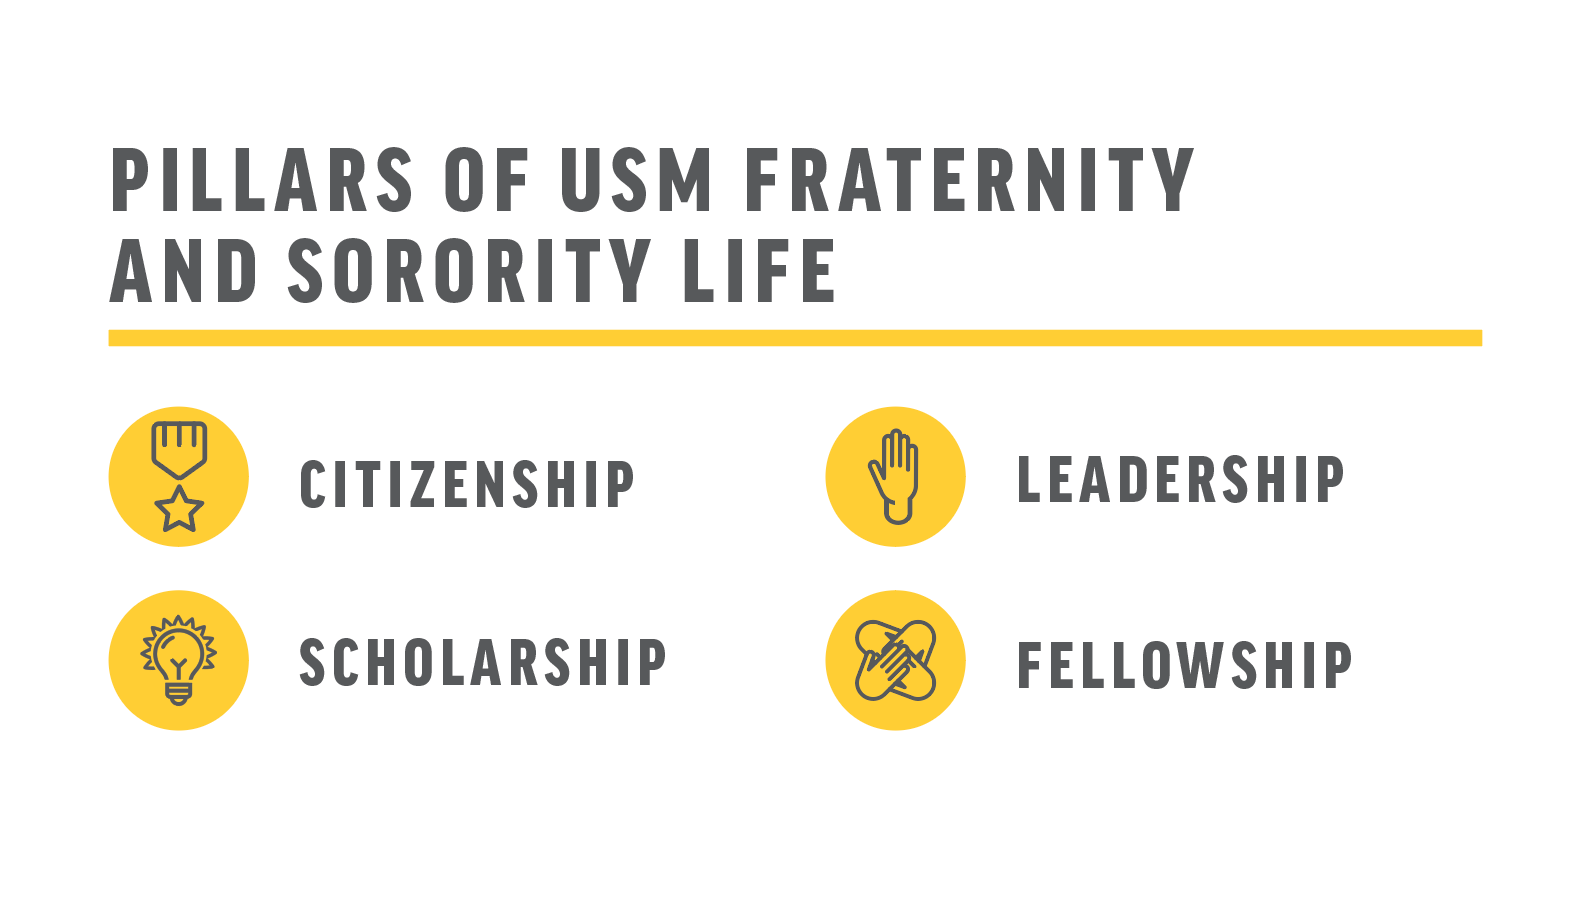 Pillars of USM Fraternity and Sorority Life | Citizenship, Leadership, Scholarship, Fellowship